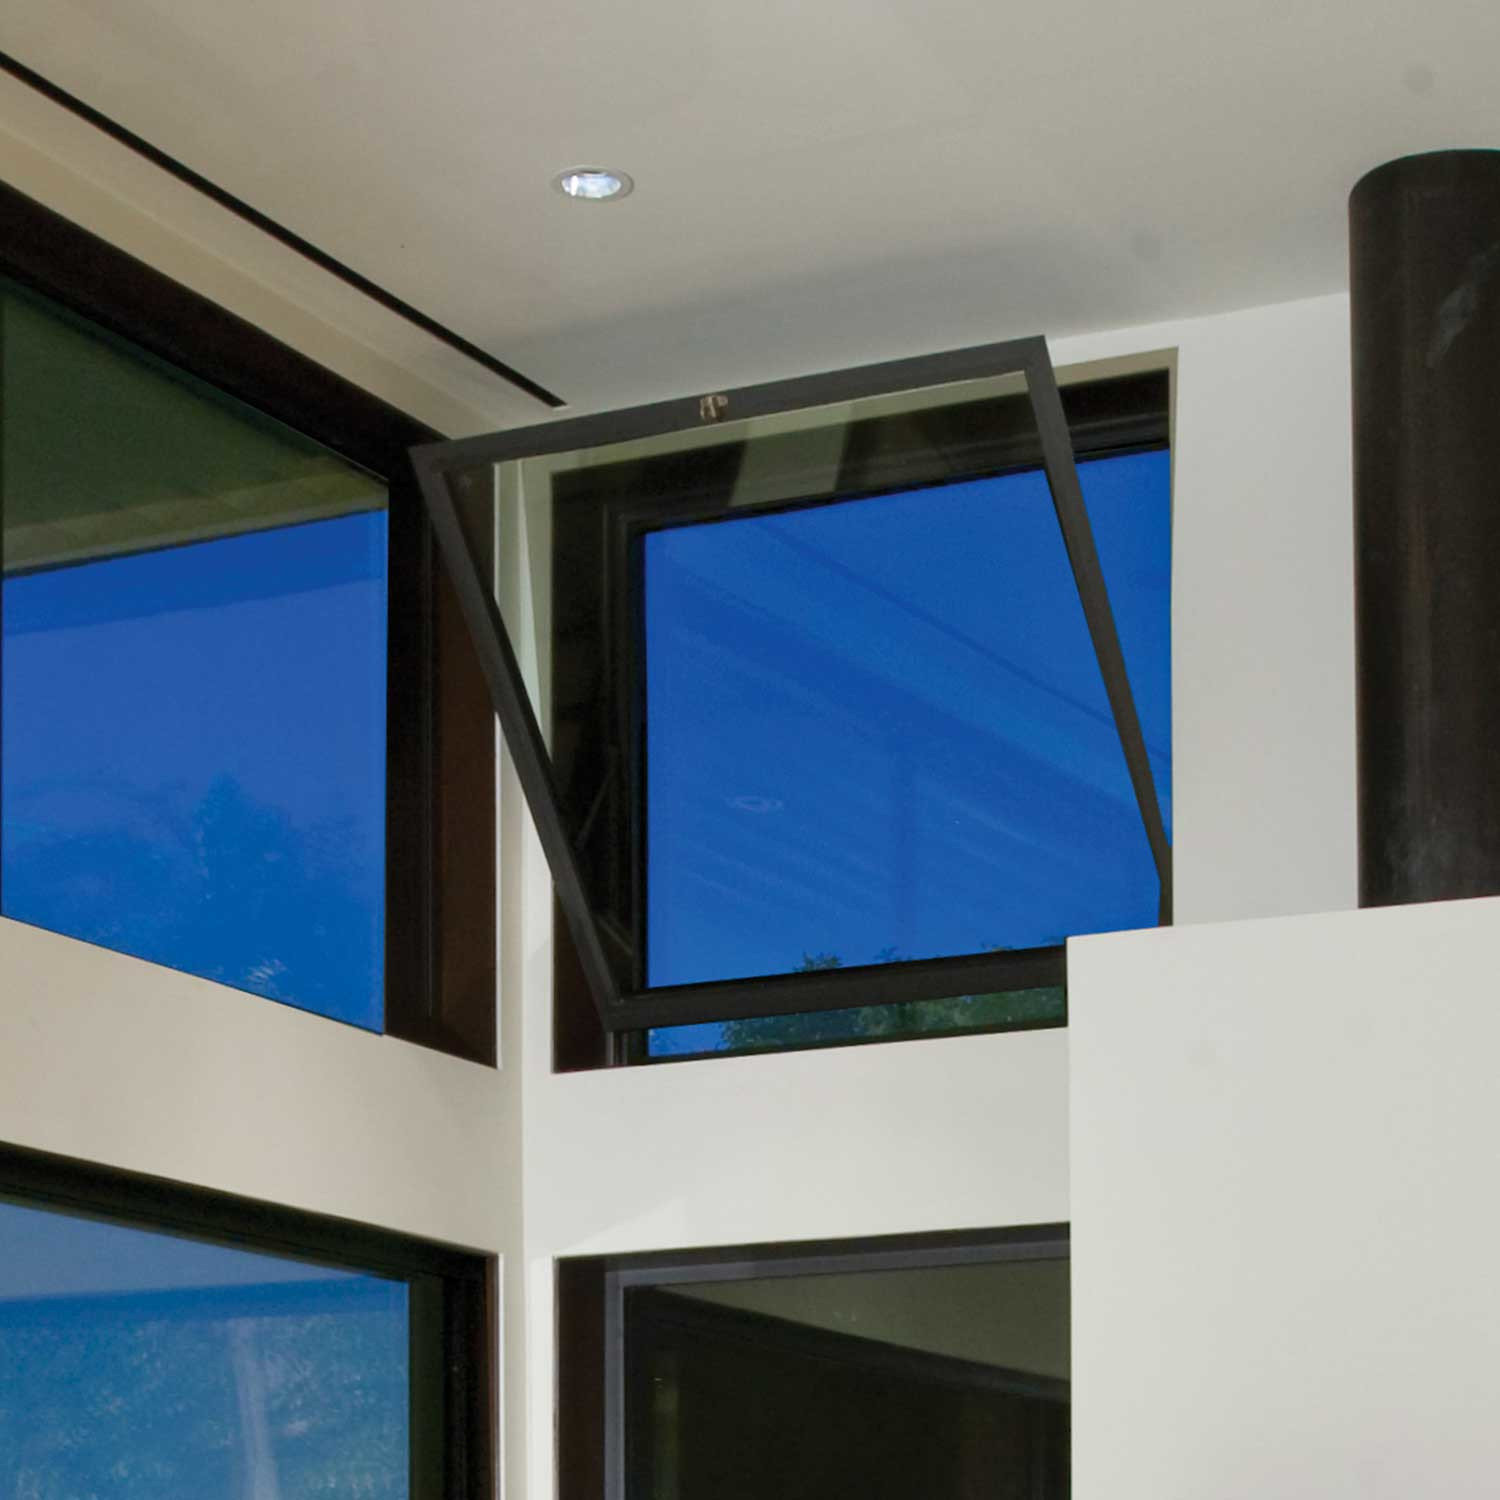 Western Window Systems image | Western Window Systems